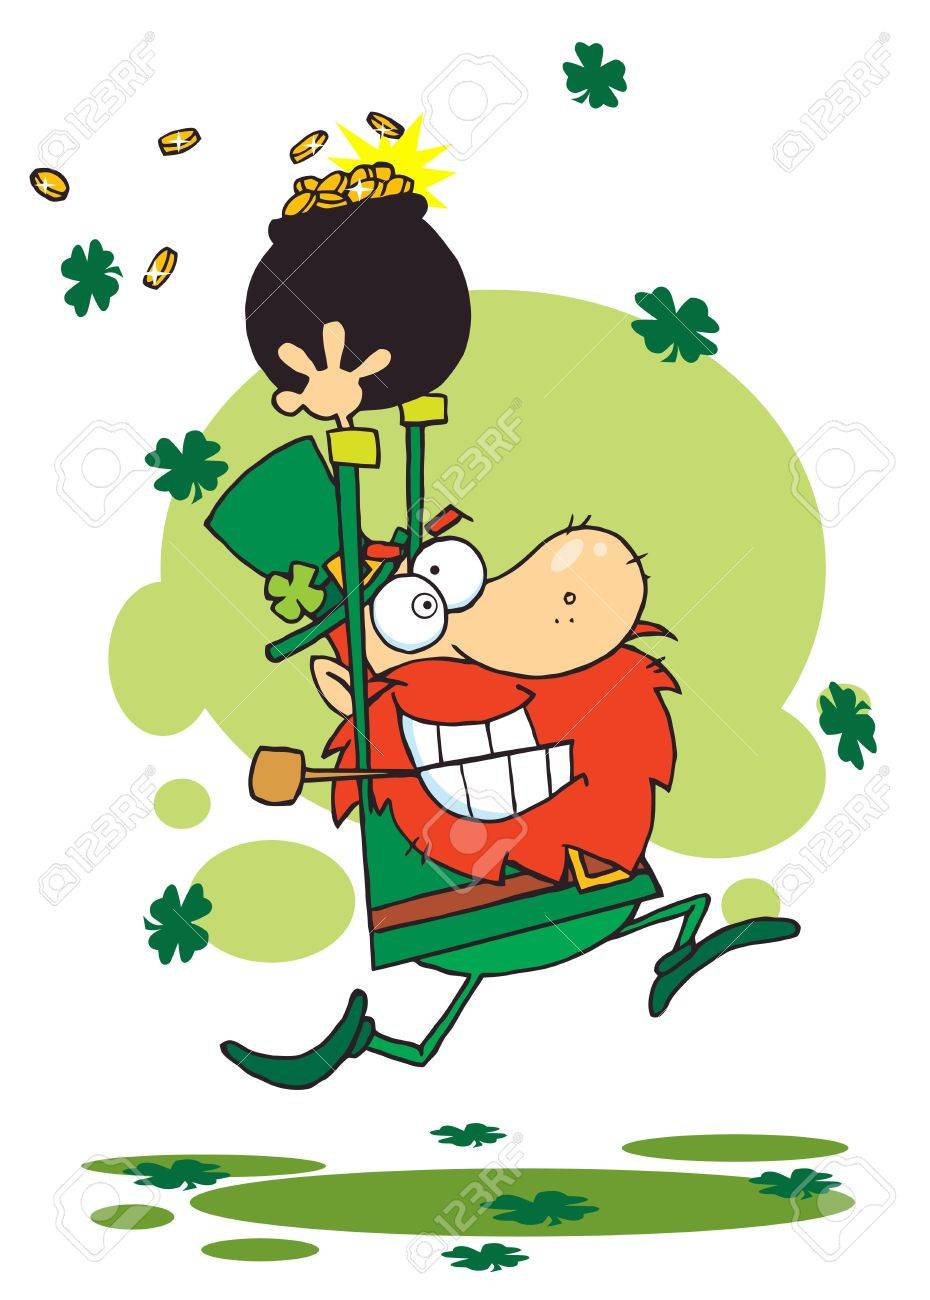 Greedy Leprechaun Running Through Shamrocks With A Pot Of Gold Over His Head Stock Vector - 6906720